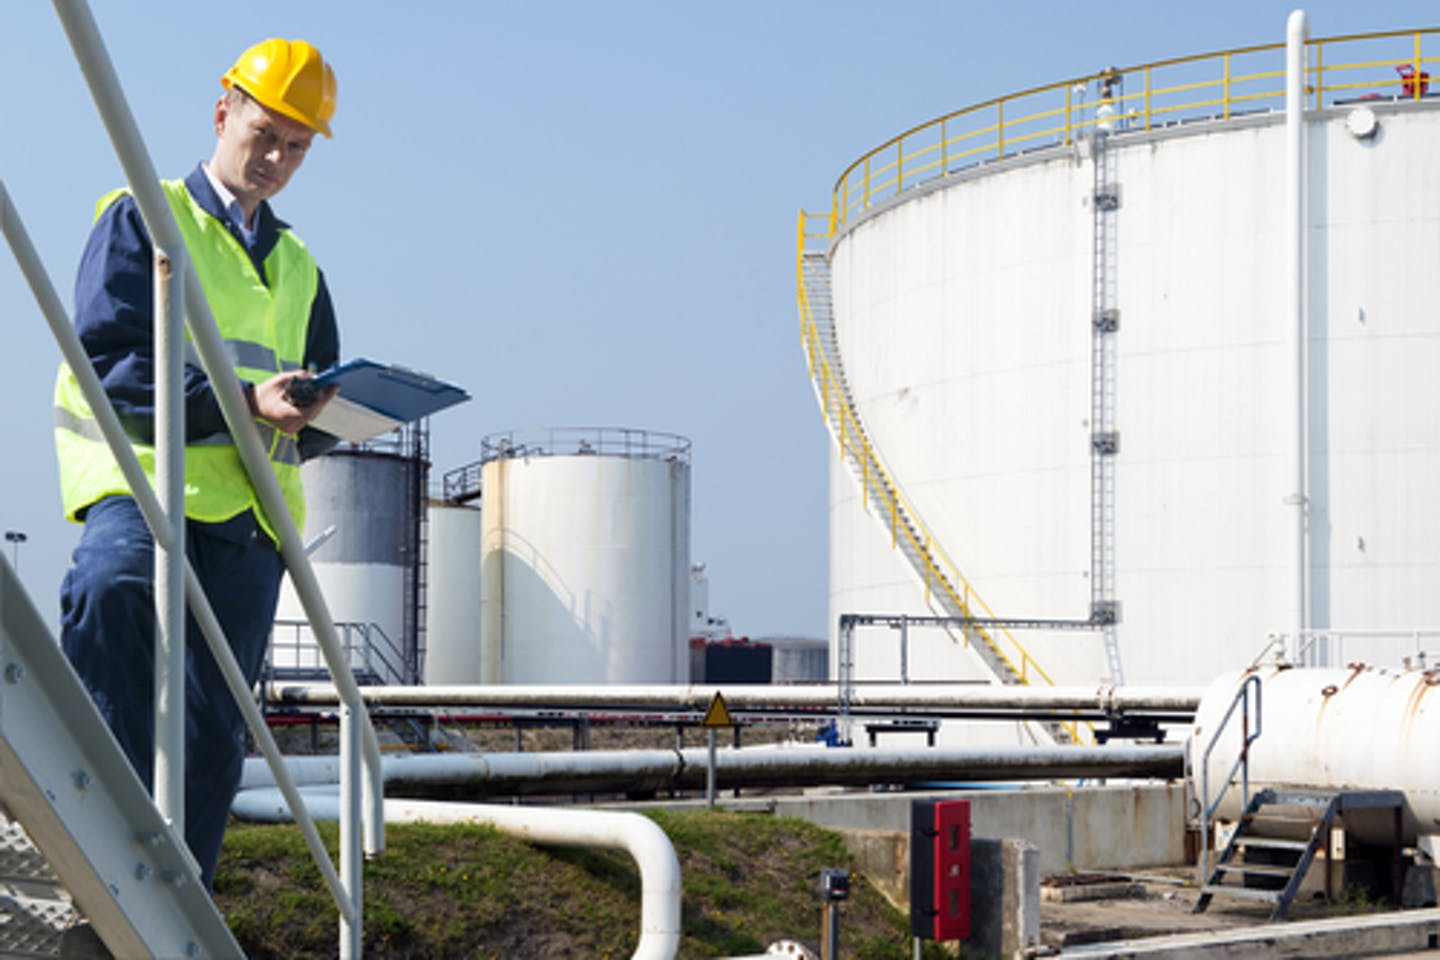 Continuous energy audits